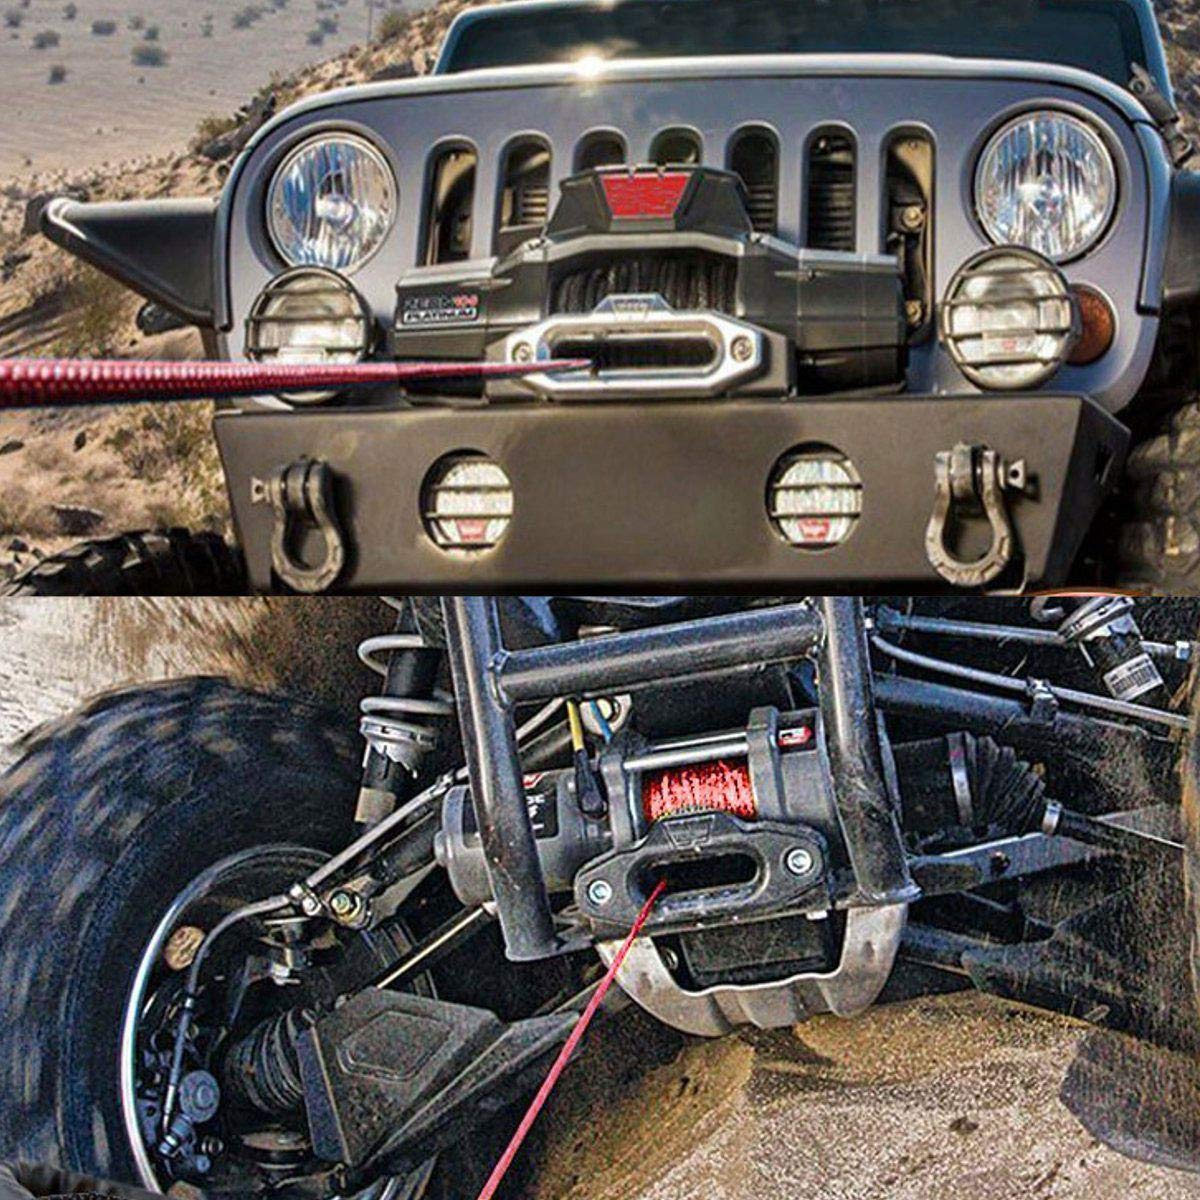 Synthetic Winch Rope Kit 5//16 x100ft Strong Durable UHMWPE Synthetic Winch Rope 12800 LBs with Sheath and Storage Bag for 4WD Off Road Vehicle ATV UTV SUV Motorcycle Blue